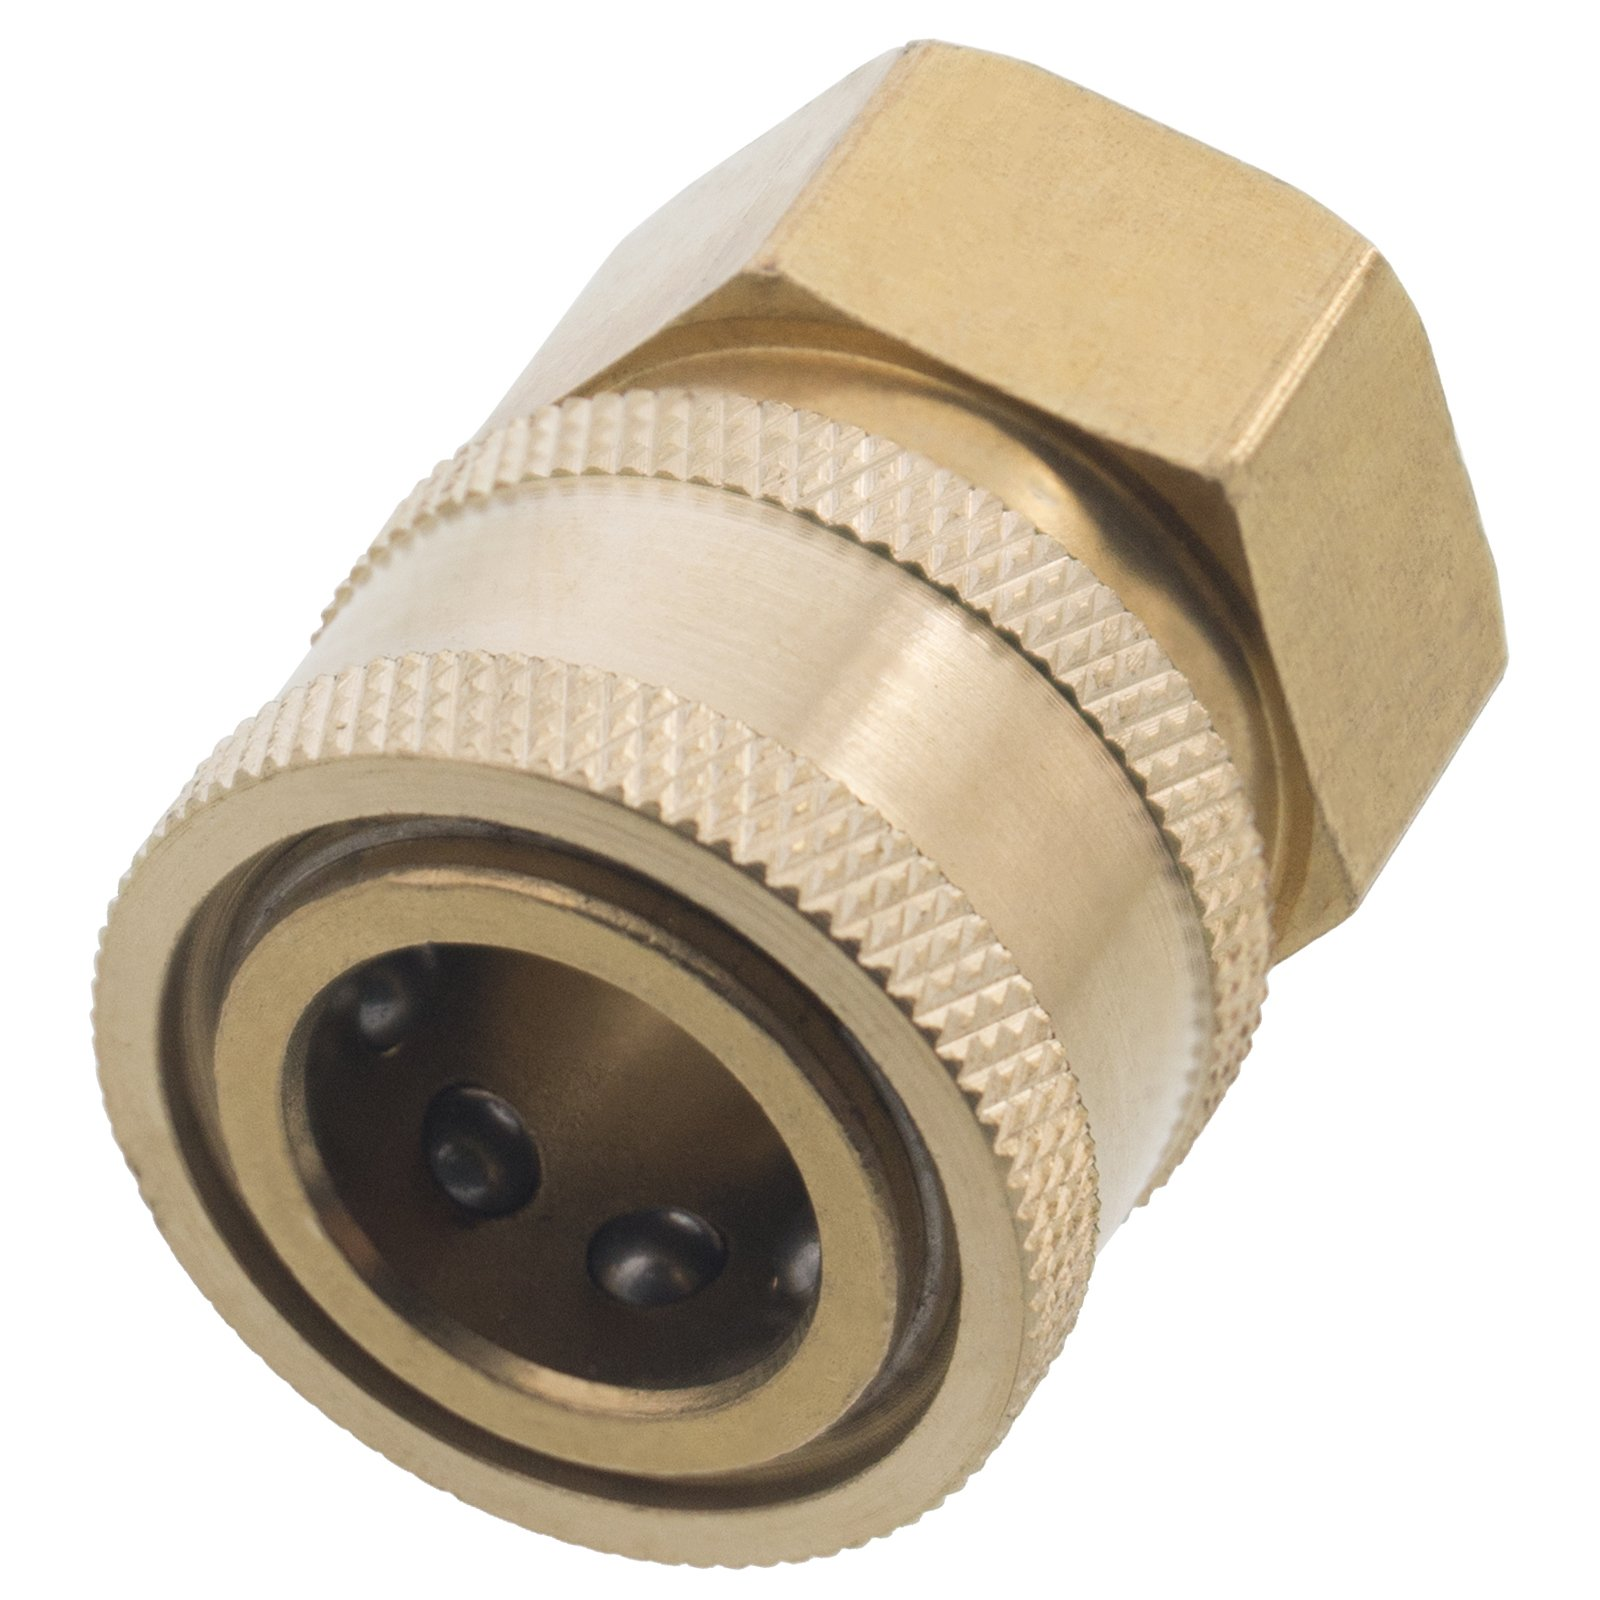 Pressure Washer 3/8'' NPT-F Quick Coupler 4000 PSI (16) by General Pump